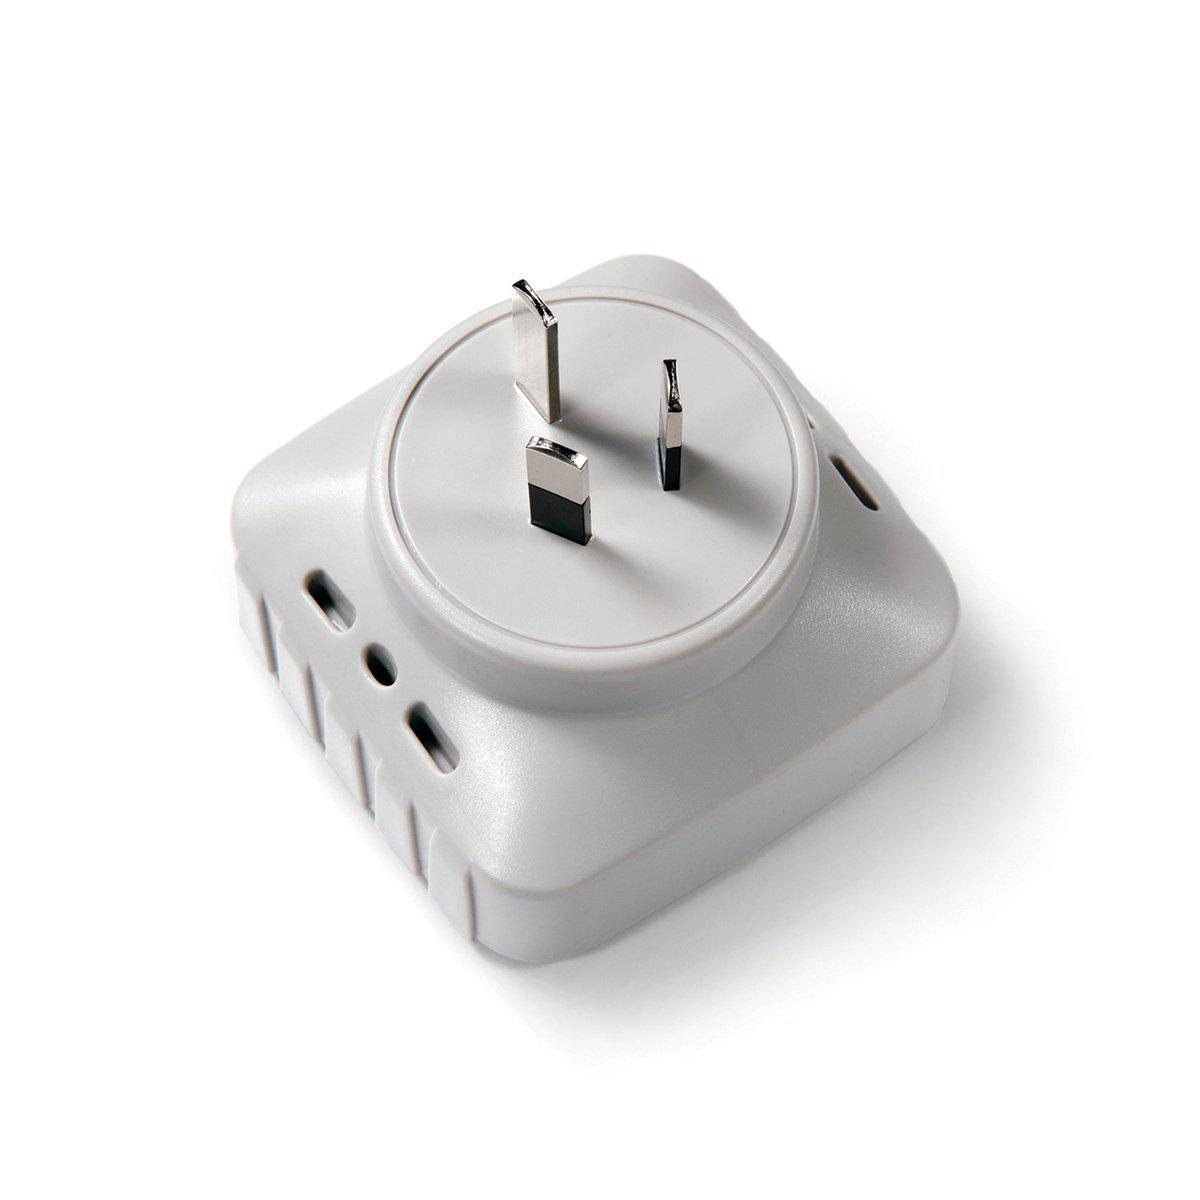 Outlet Checker Australia - Type I (1908231667825)